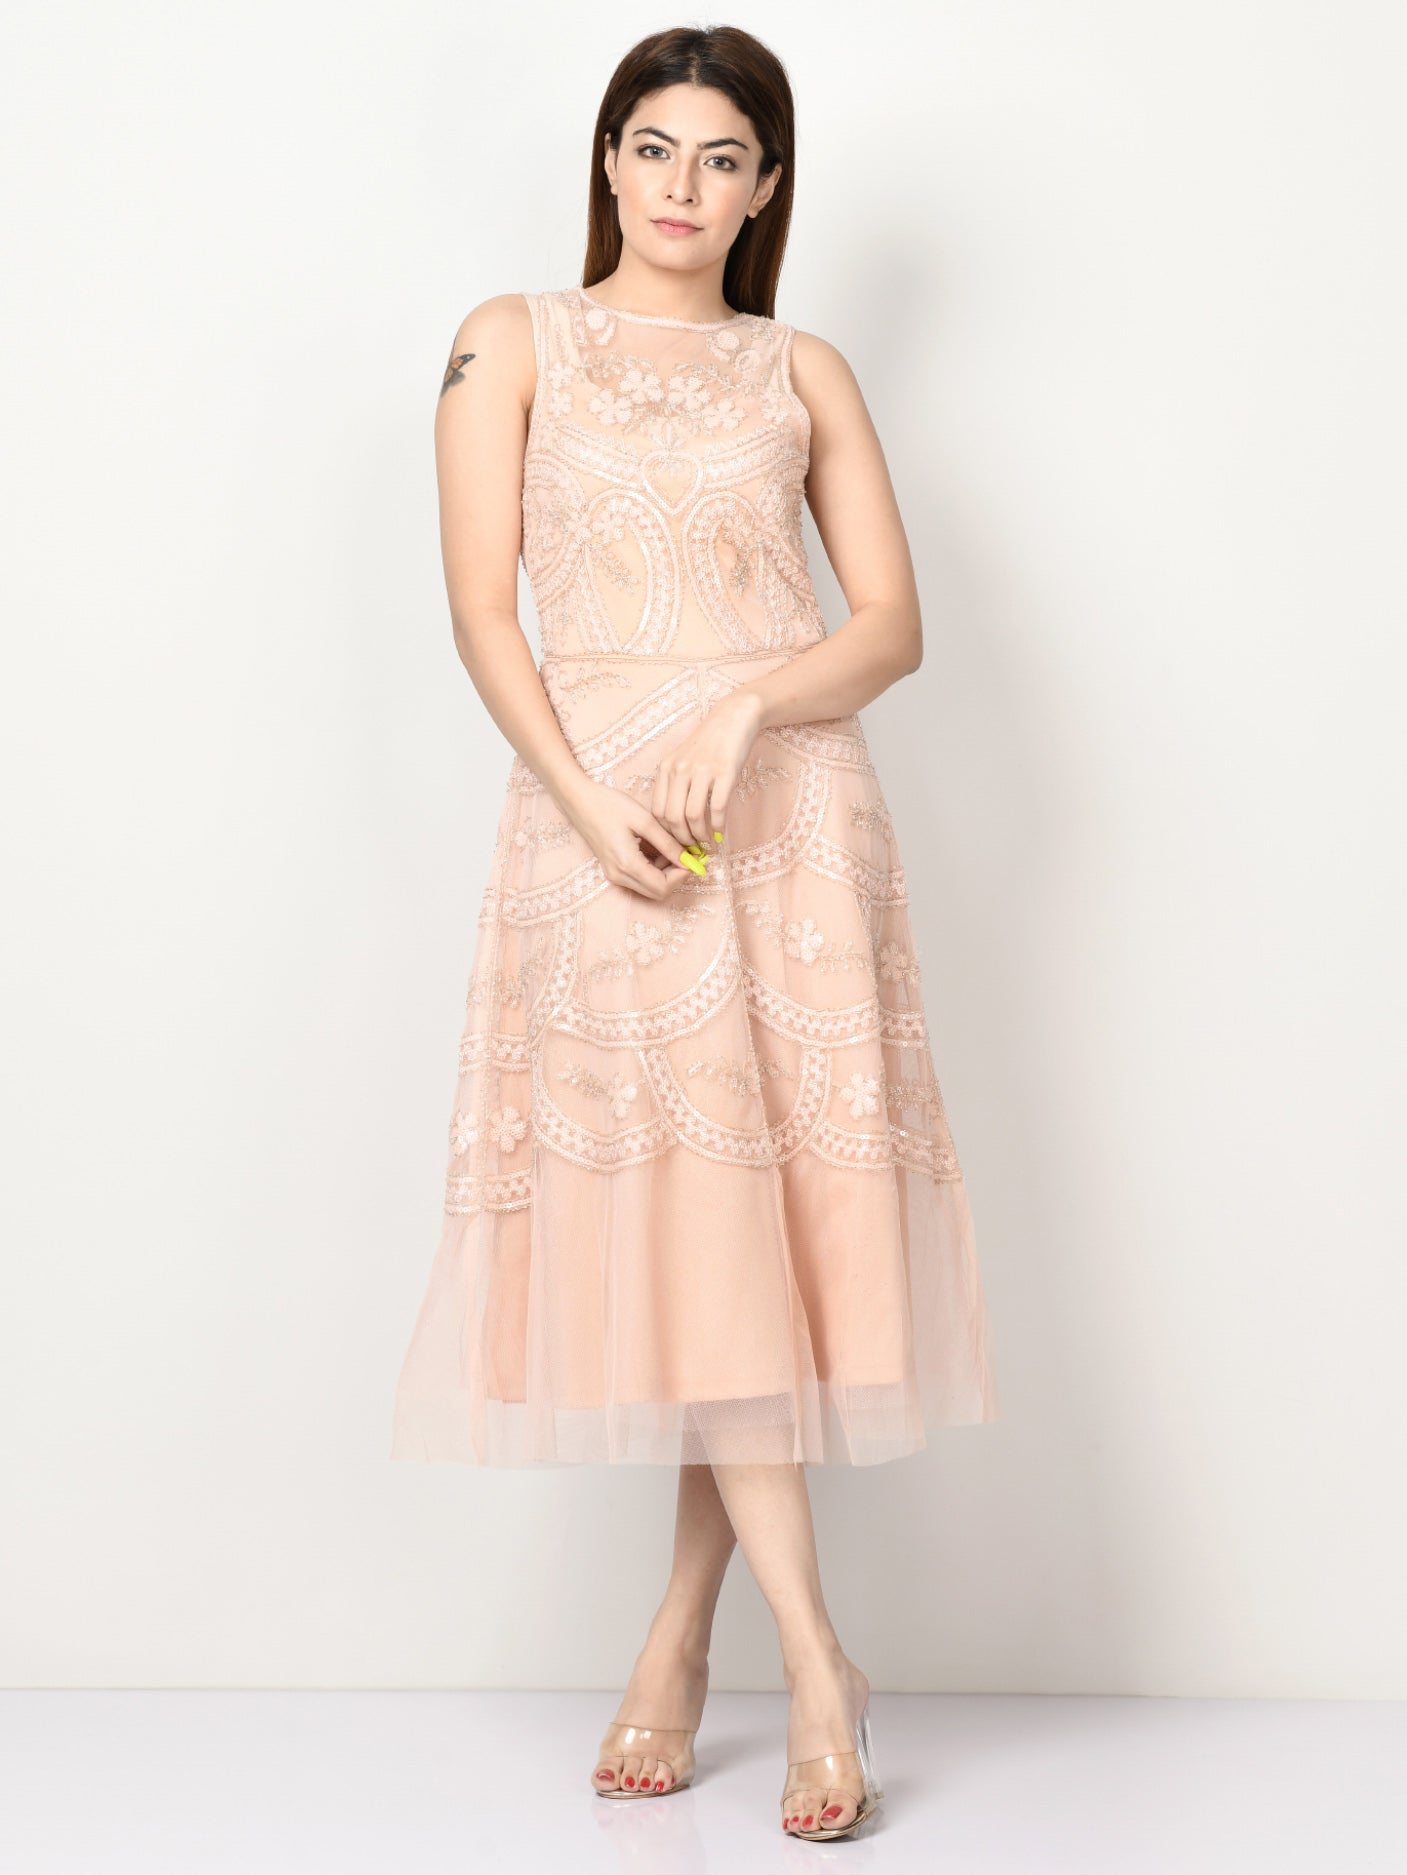 Embellished Net Dress - Light Peach